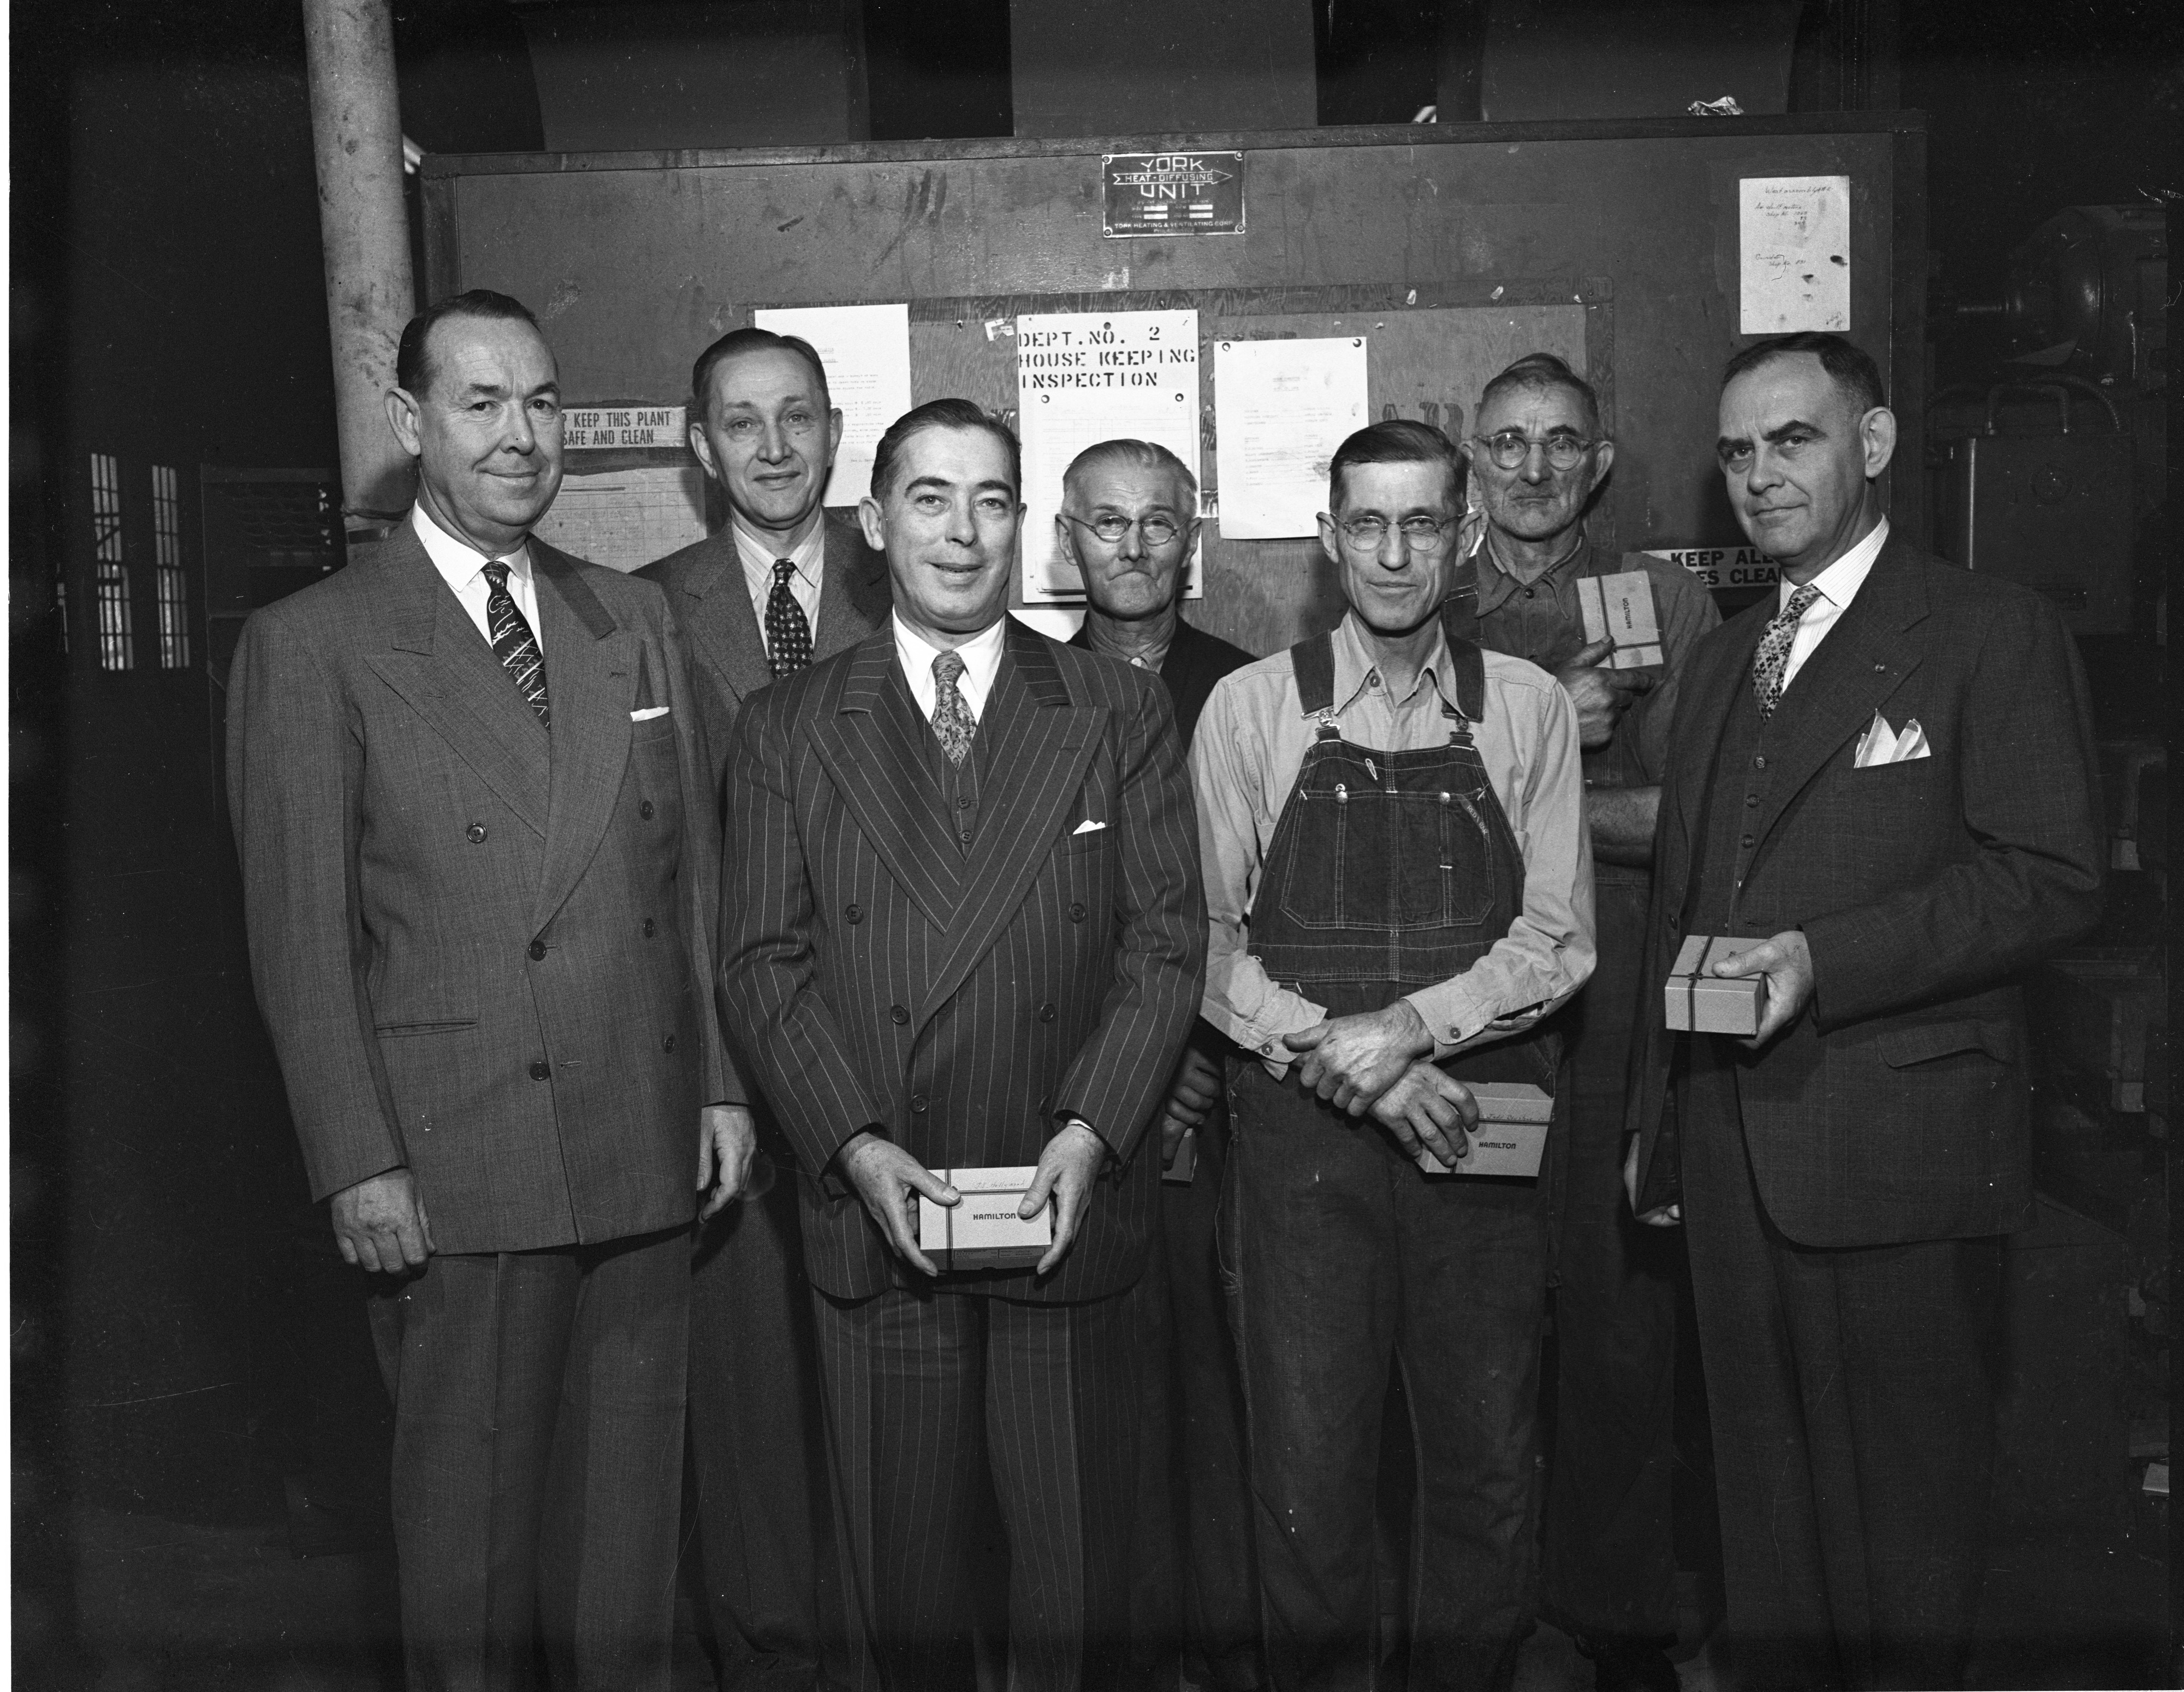 Economy Baler Employees, December 1952 image